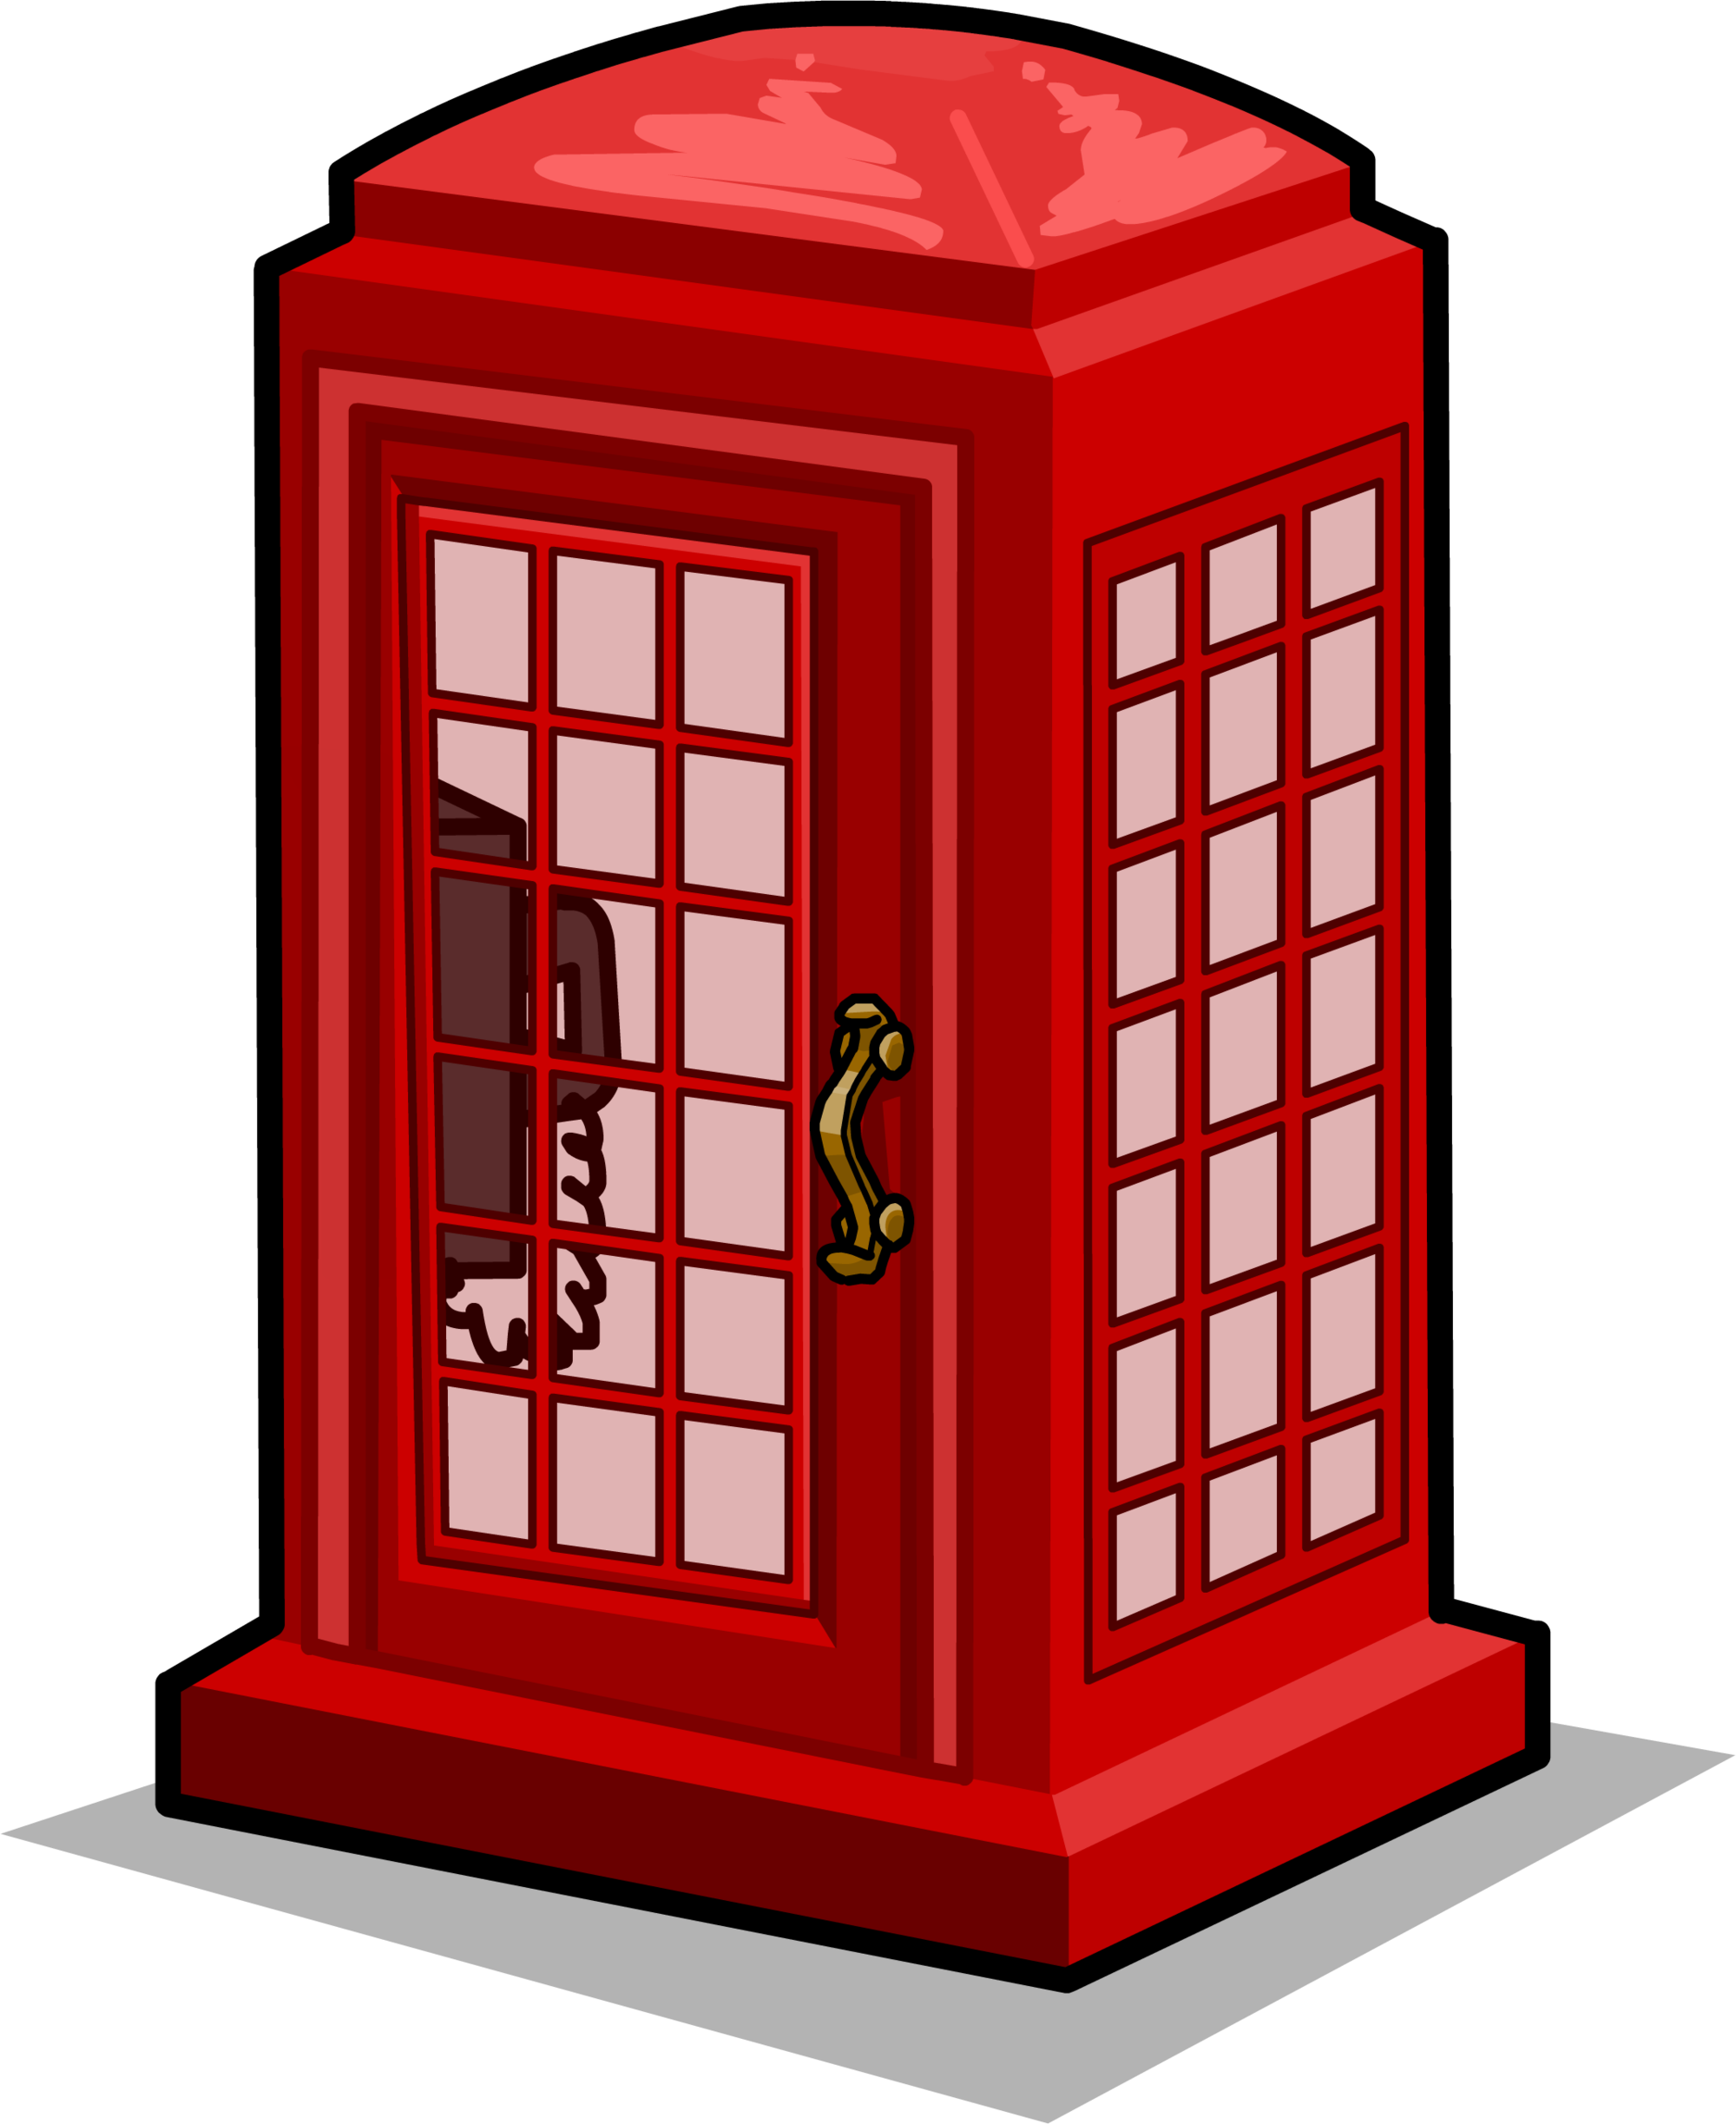 Booth clipart telephone london booth. Png images free download